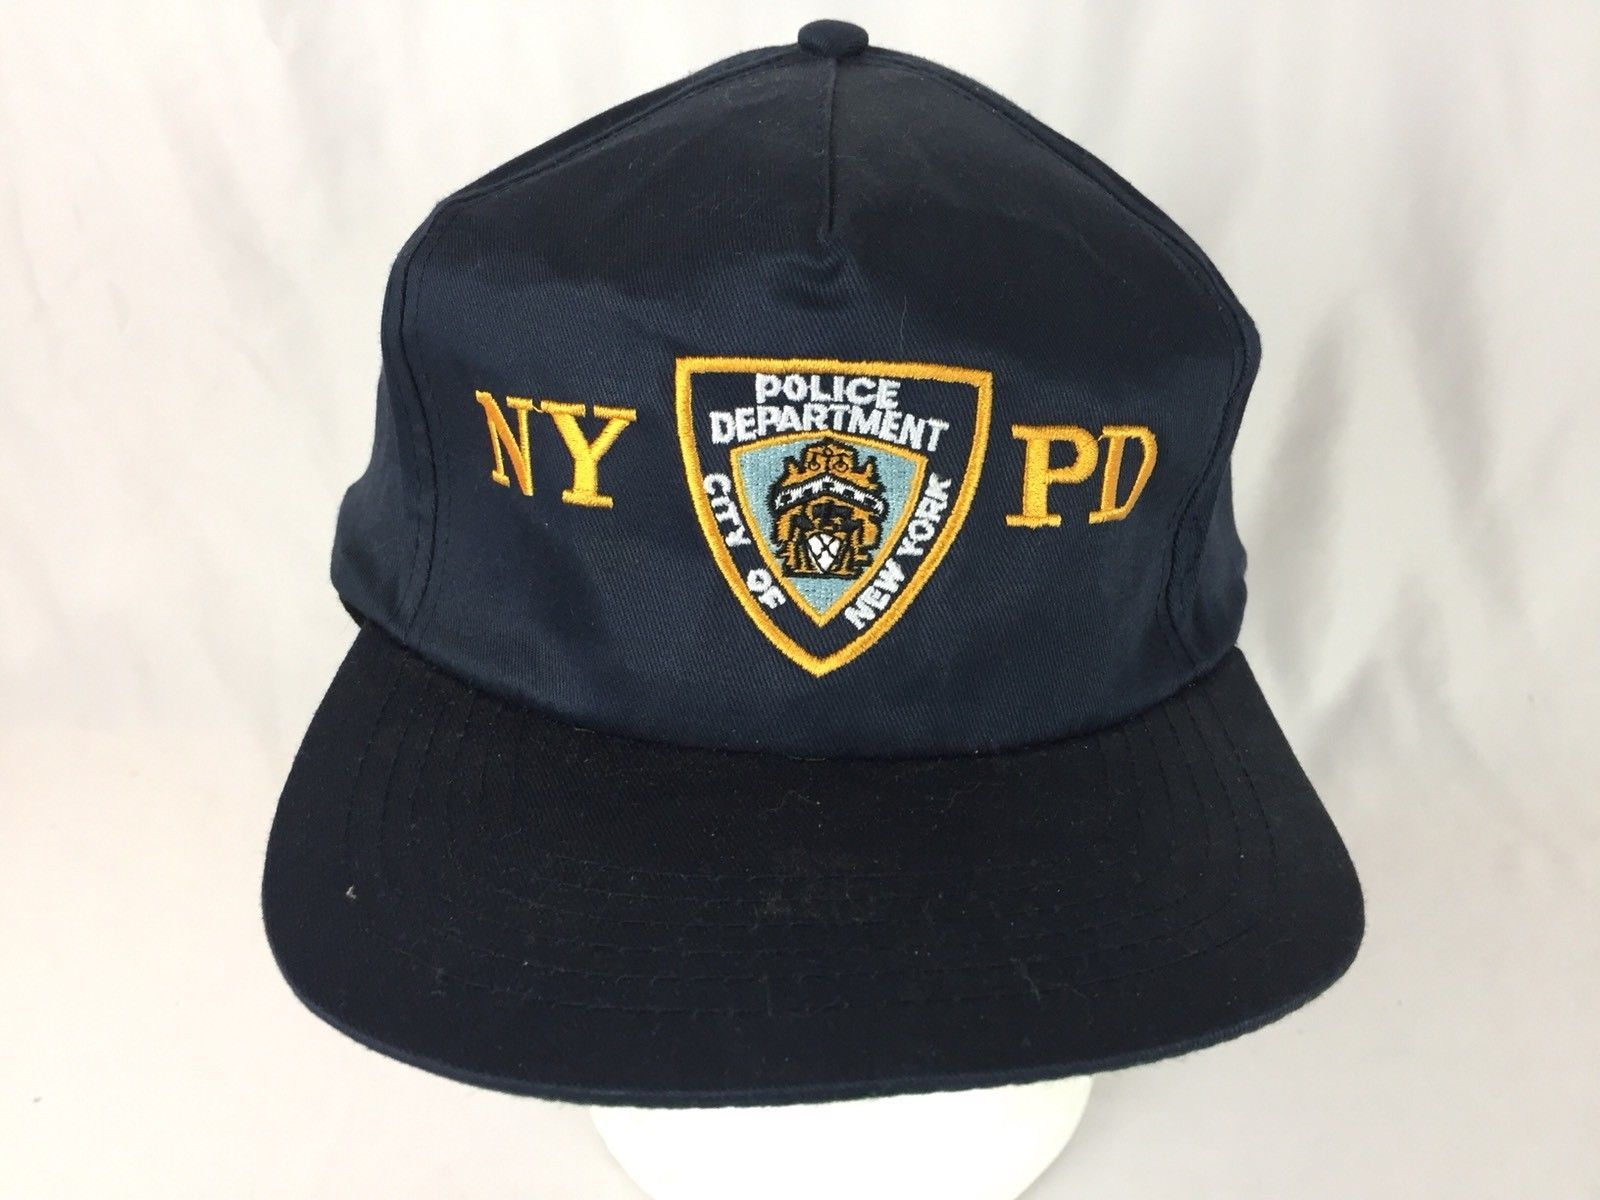 0834d0d97 Vintage 1990s Nypd New York City Police and 50 similar items